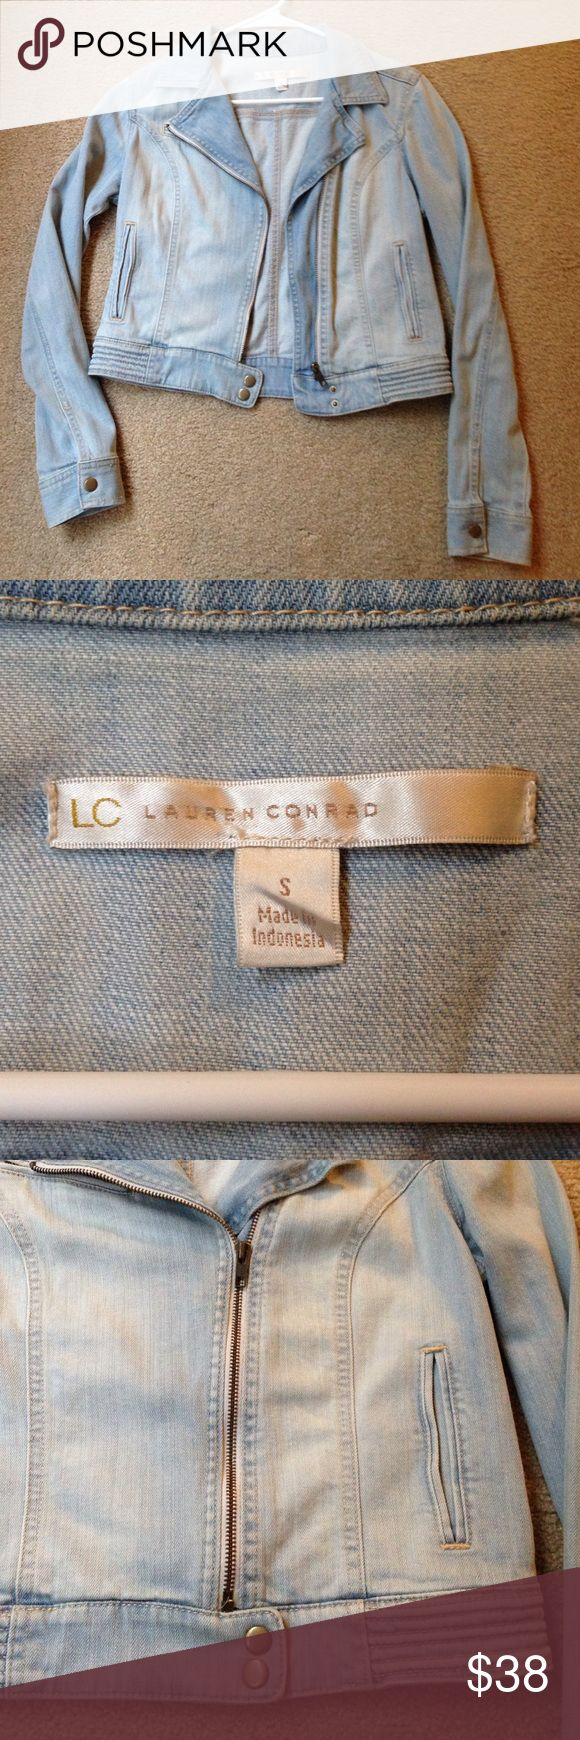 Lauren Conrad Light Wash Denim Jacket Light wash slightly cropped denim jacket. In great like-new condition. No visible signs of wear. Nice thick, sturdy material. 🌸 LC Lauren Conrad Jackets & Coats Utility Jackets